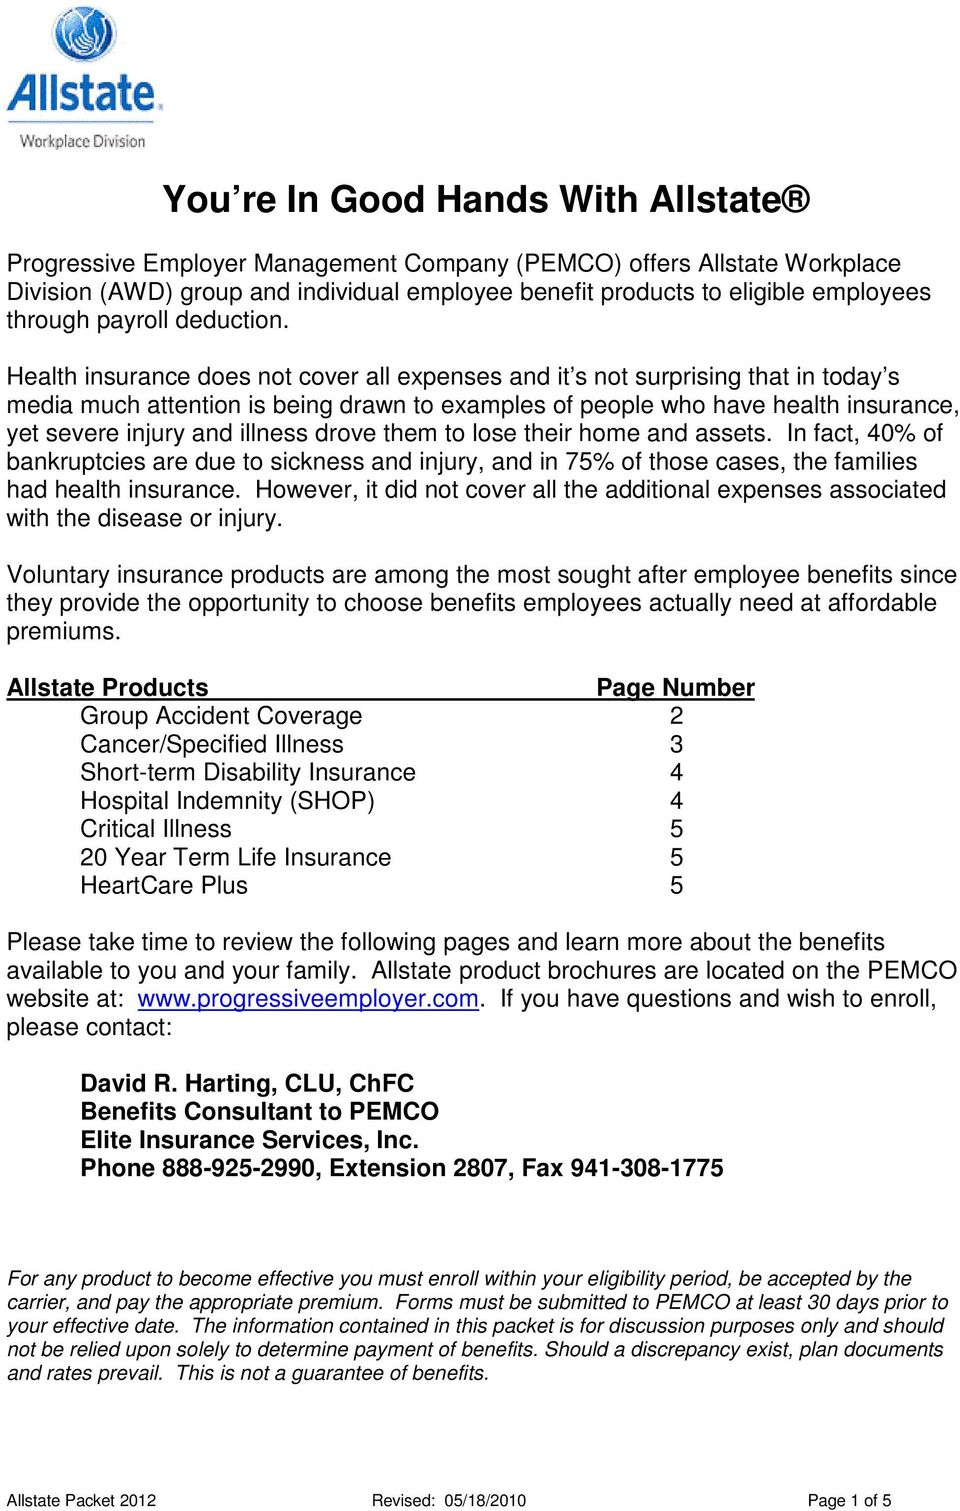 Allstate Employee Benefits >> You Re In Good Hands With Allstate Pdf